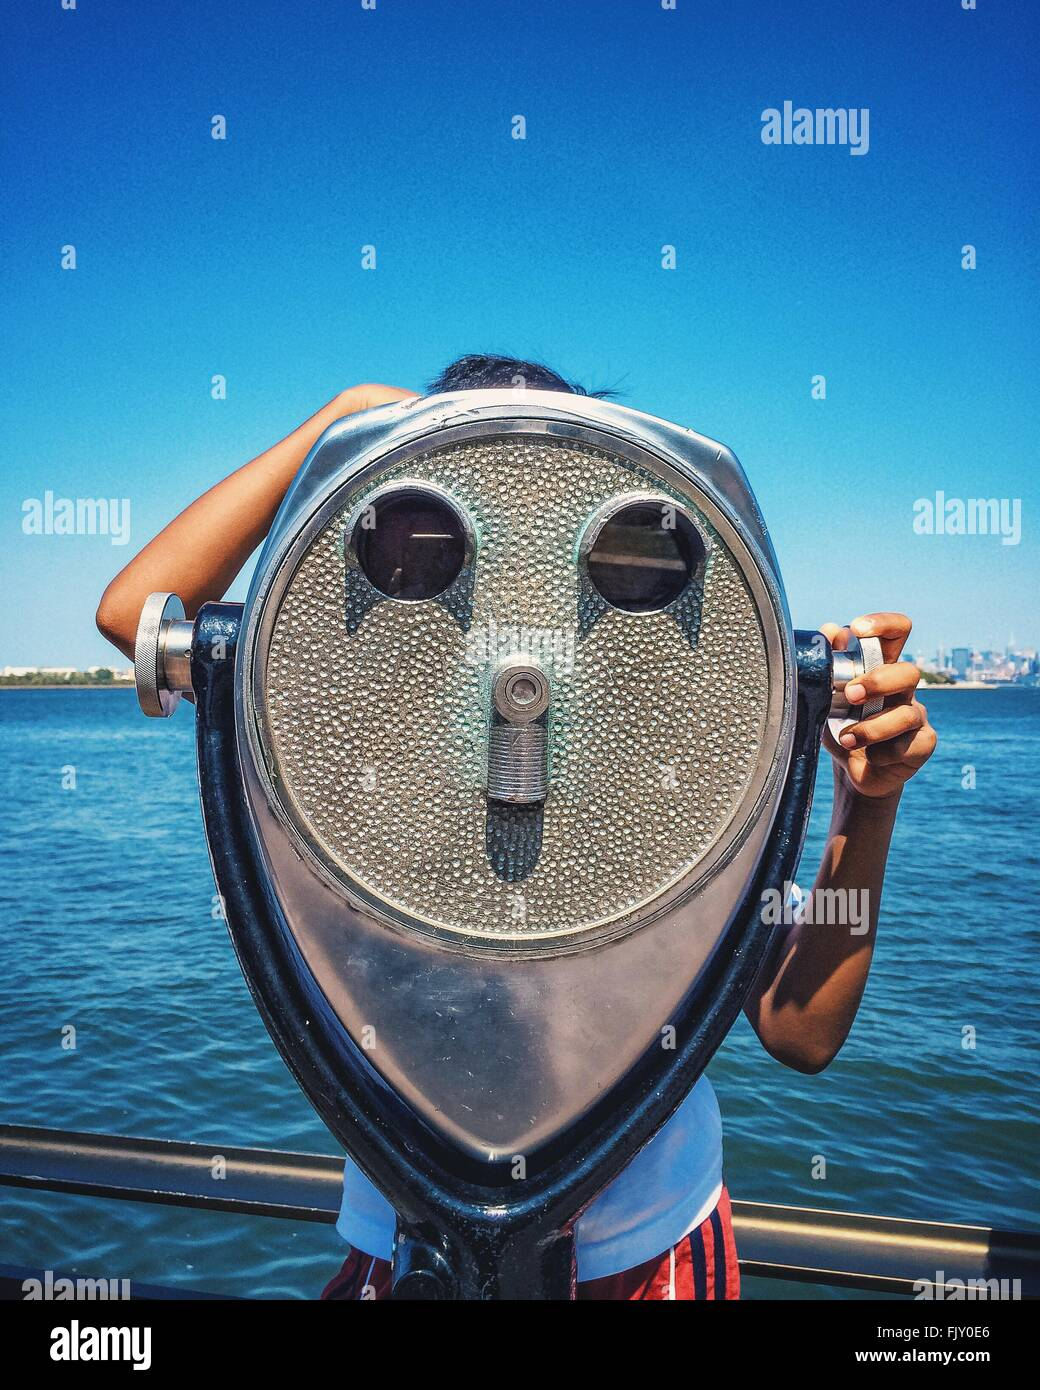 Person Looking Through Coin-Operated Binoculars By Sea At Liberty Island - Stock Image